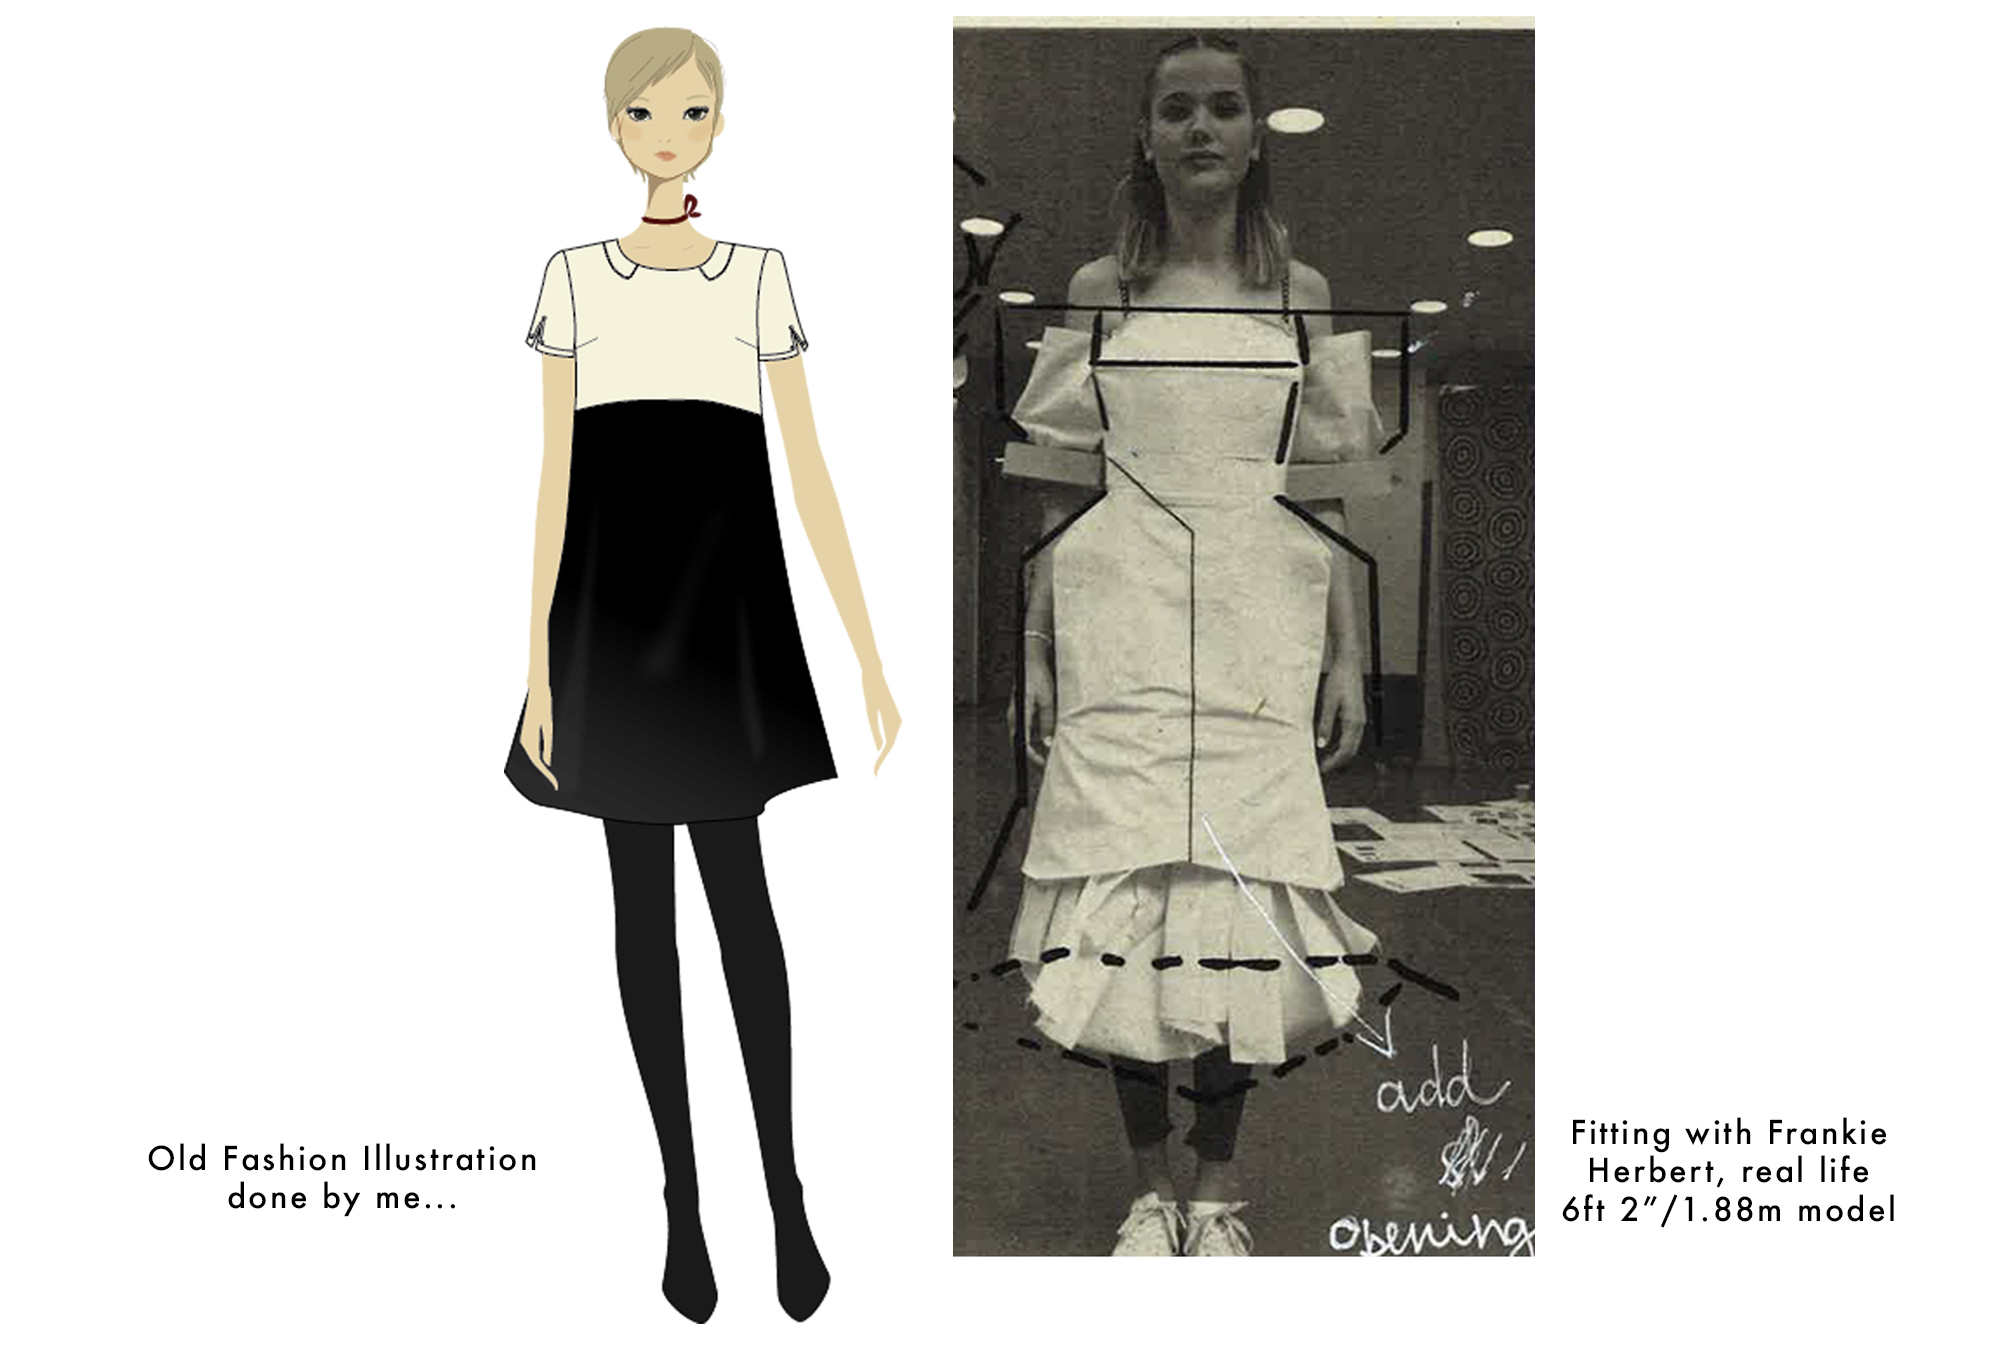 An old Fashion Illustration by moi: Unrealistic standards much?